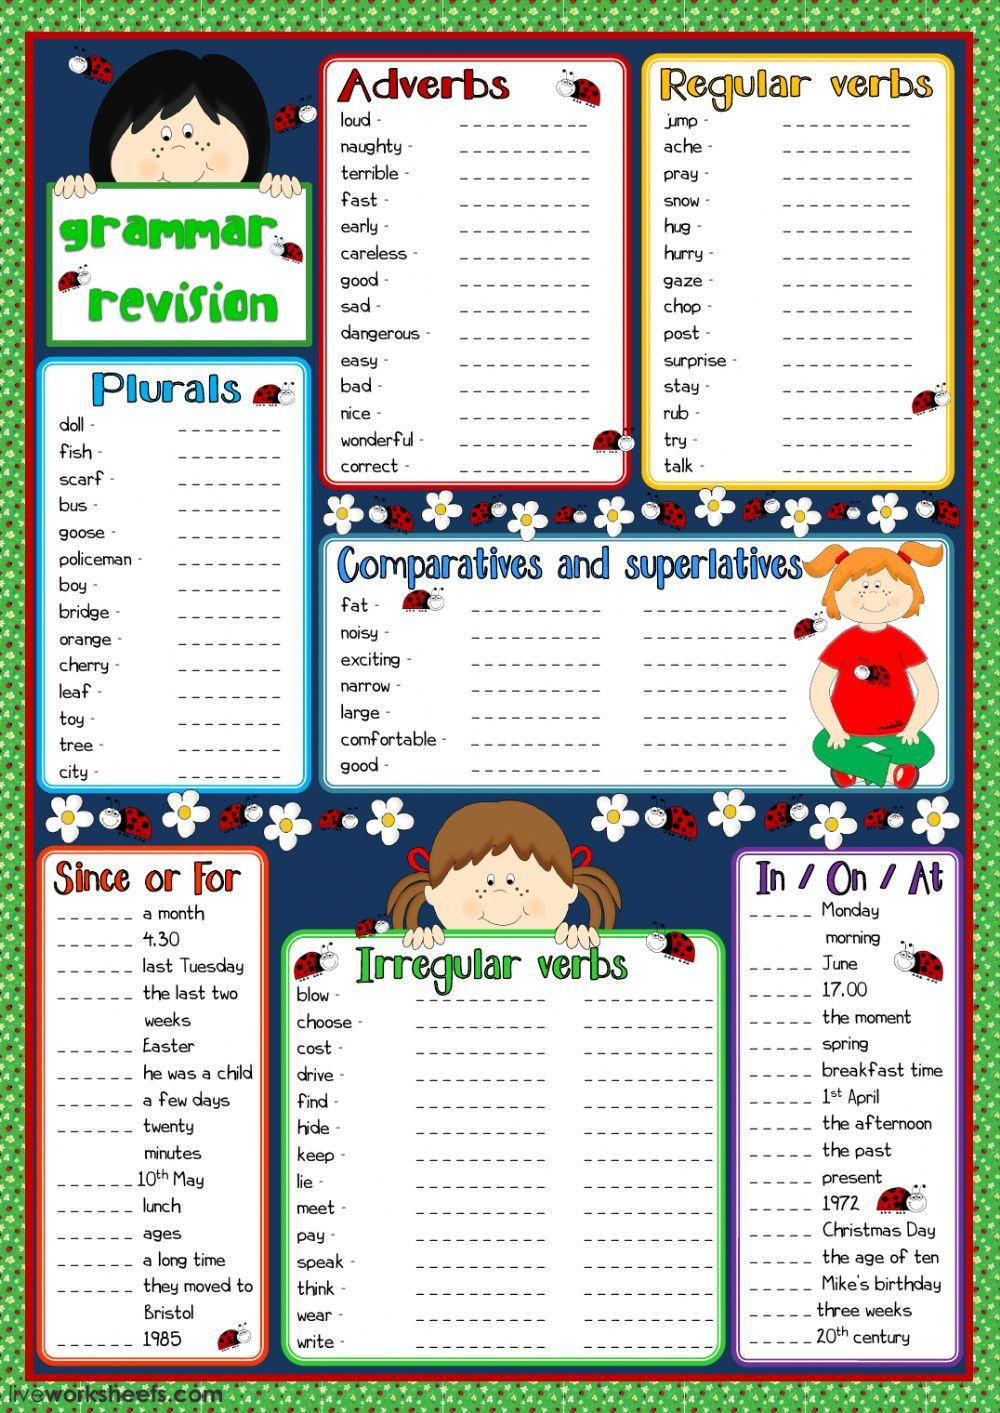 Grammar Interactive And Downloadable Worksheet You Can Do The Exercises Online Or Download The Worksheet Grammar Practice Grammar English As A Second Language [ 1413 x 1000 Pixel ]